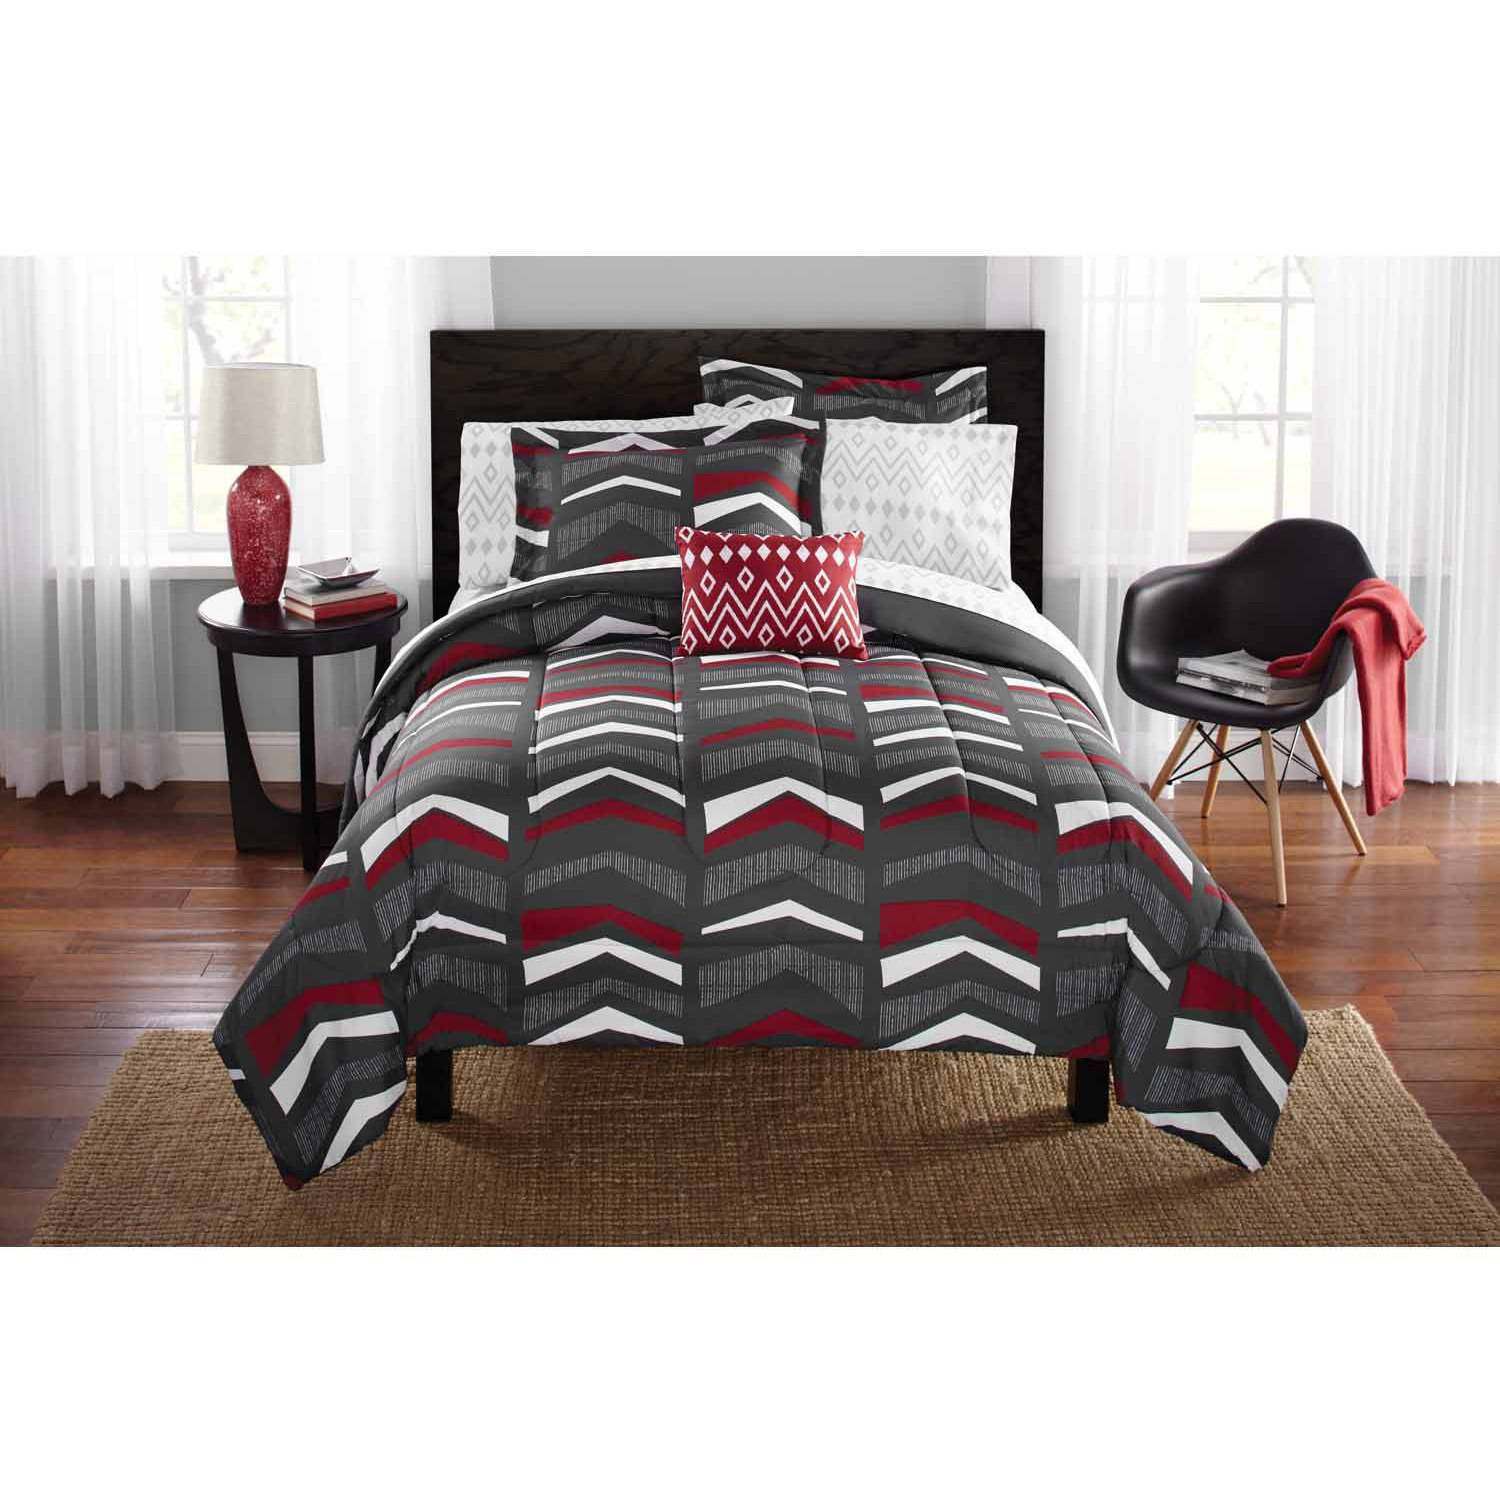 Mainstays Tribal Chevron Bed in a Bag Complete Bedding Set